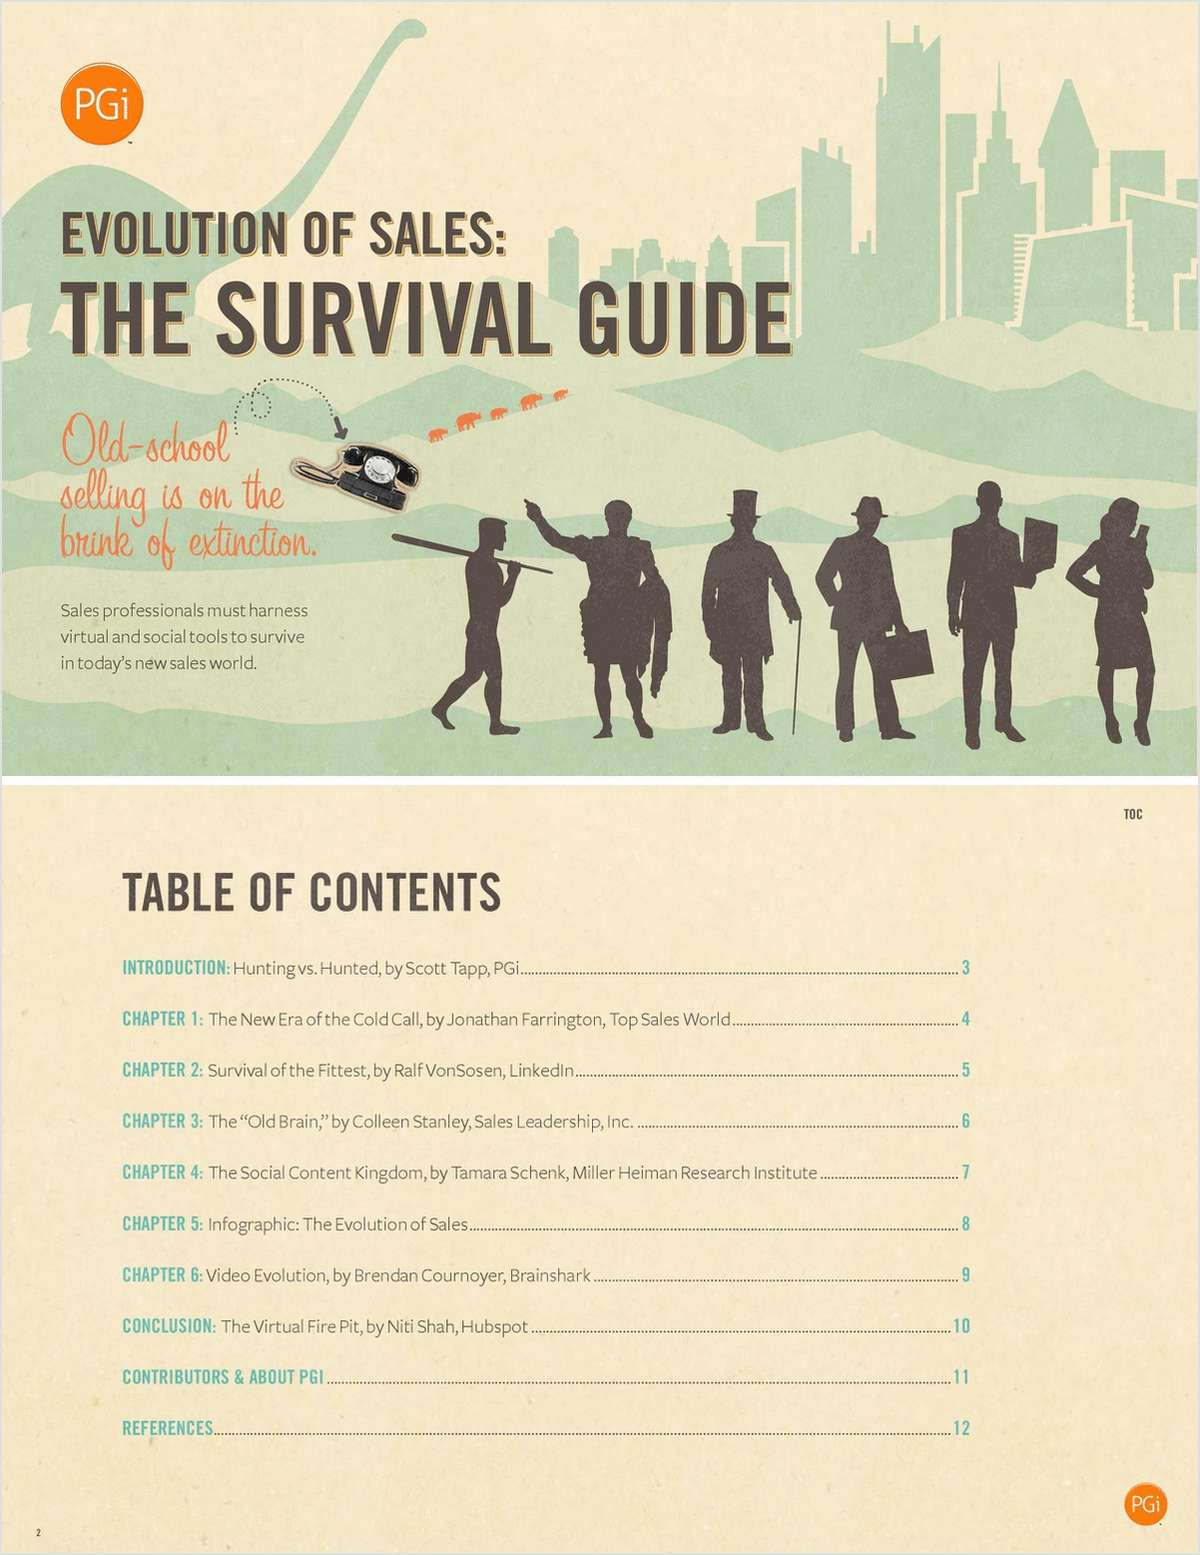 The Evolution of Sales: Survival Guide